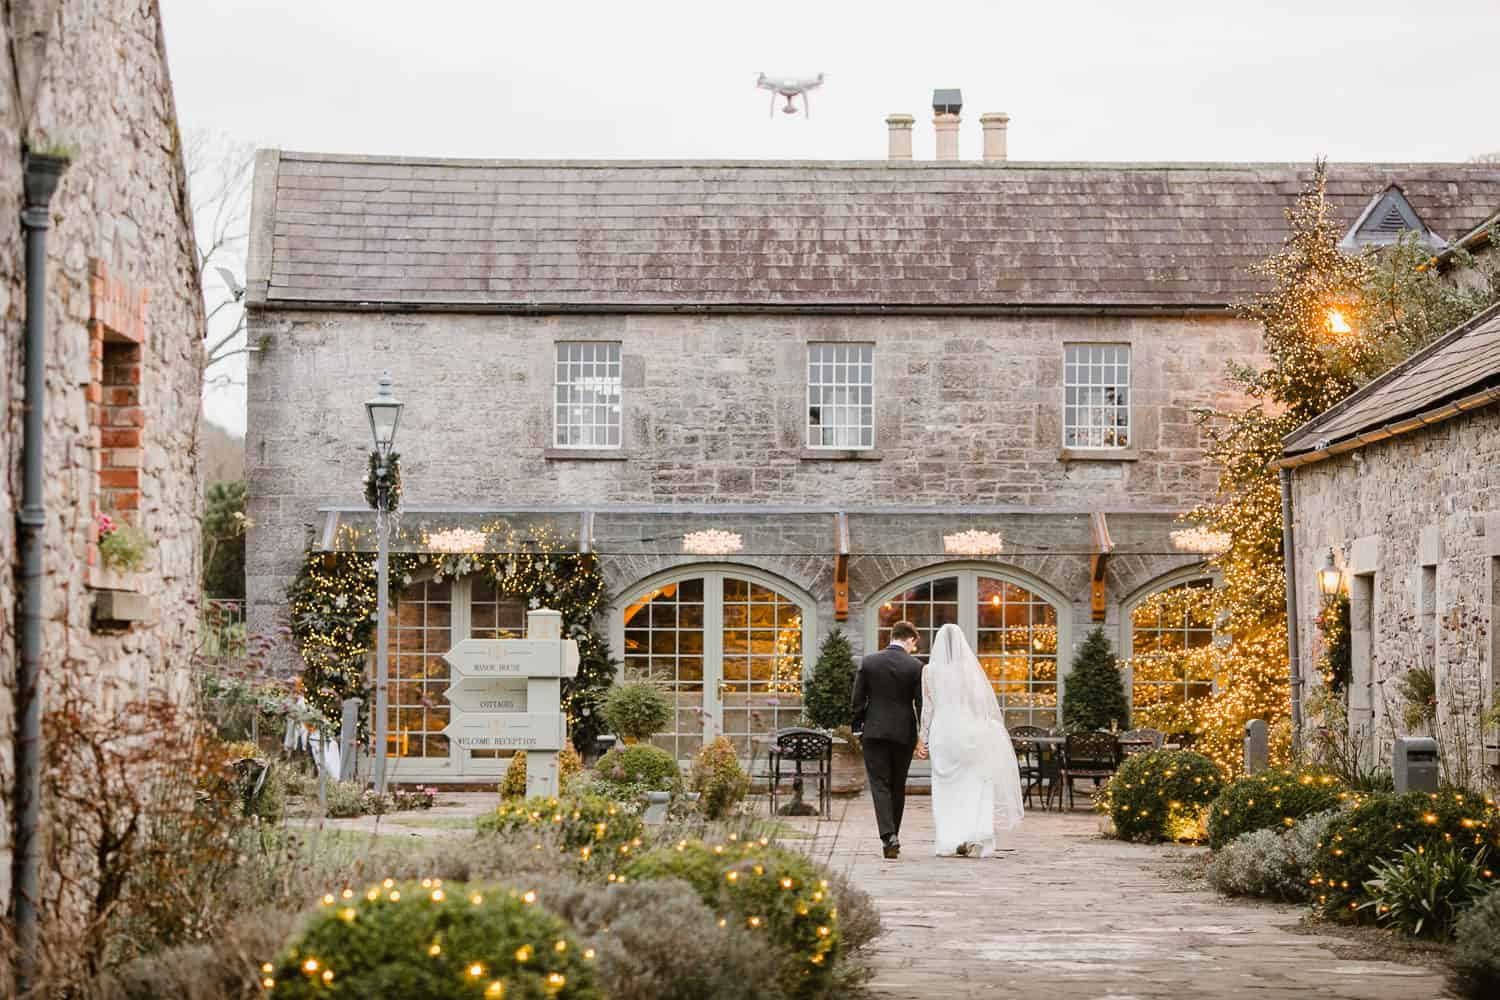 Bride and Groom in the Courtyard in Ballymagarvey Village